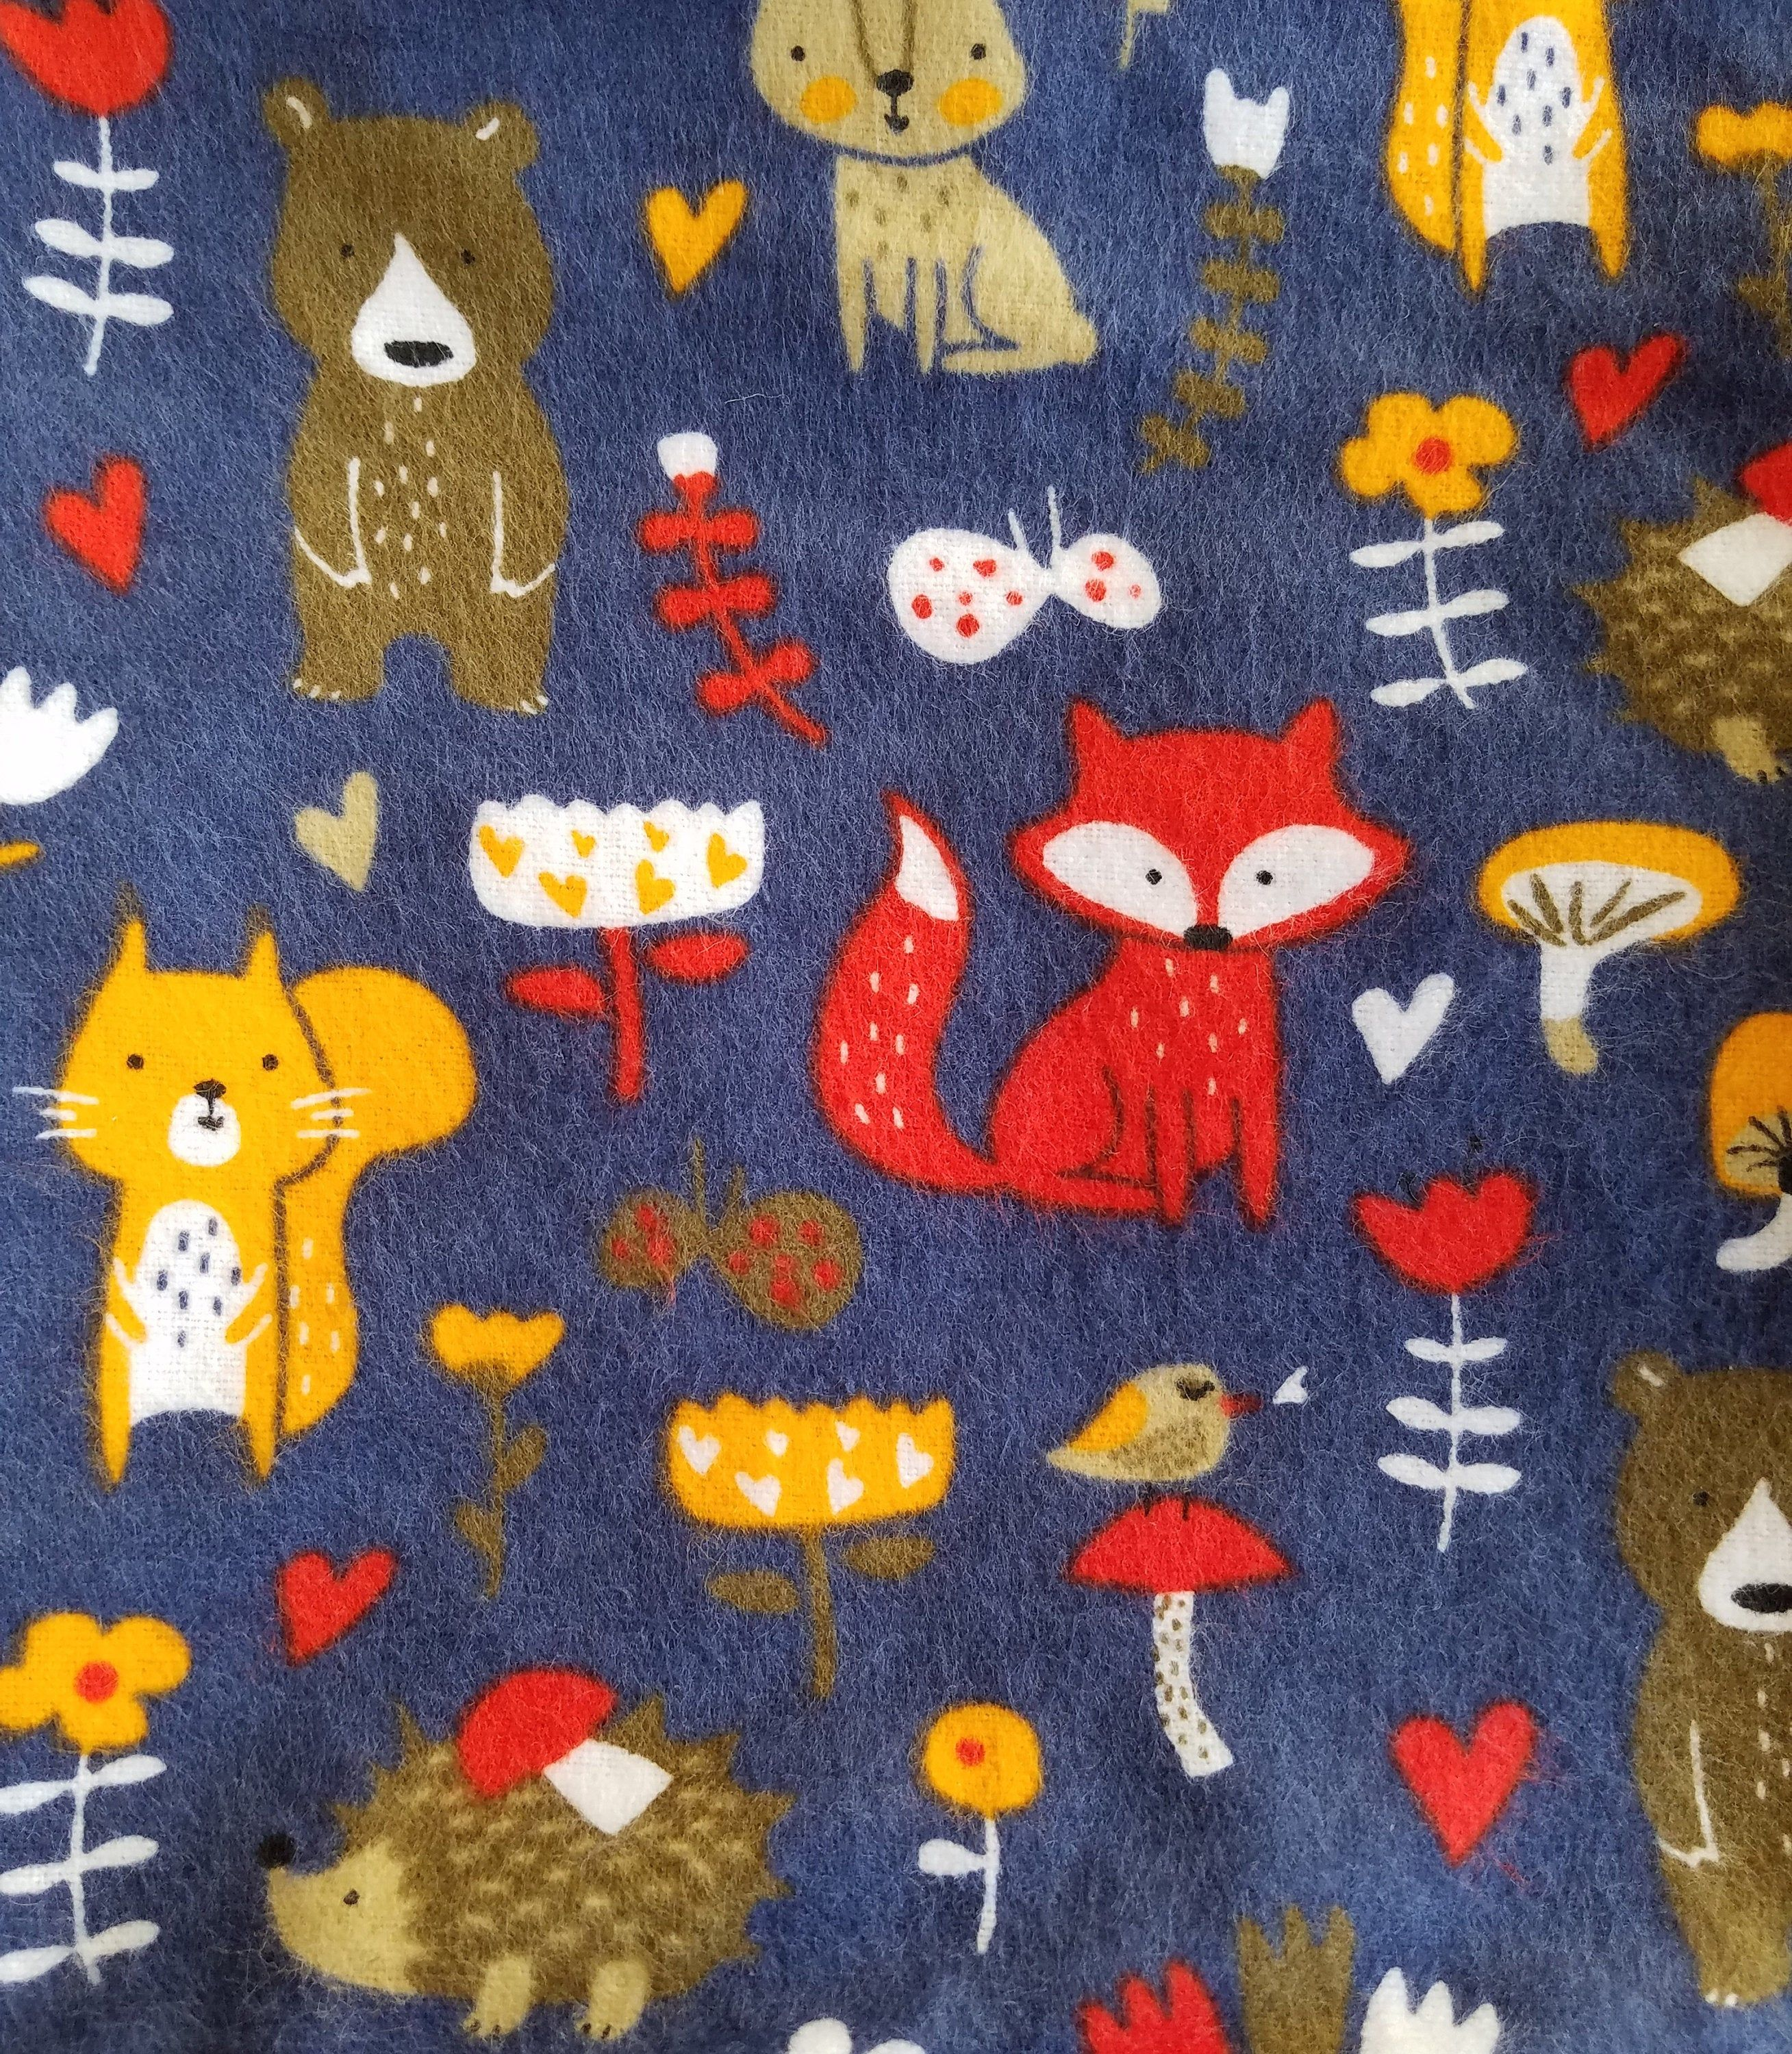 Forest Animal Fabric By The Yard 100 Cotton Flannel Fabric Only Cotton Flannel Forest Animals Fabric